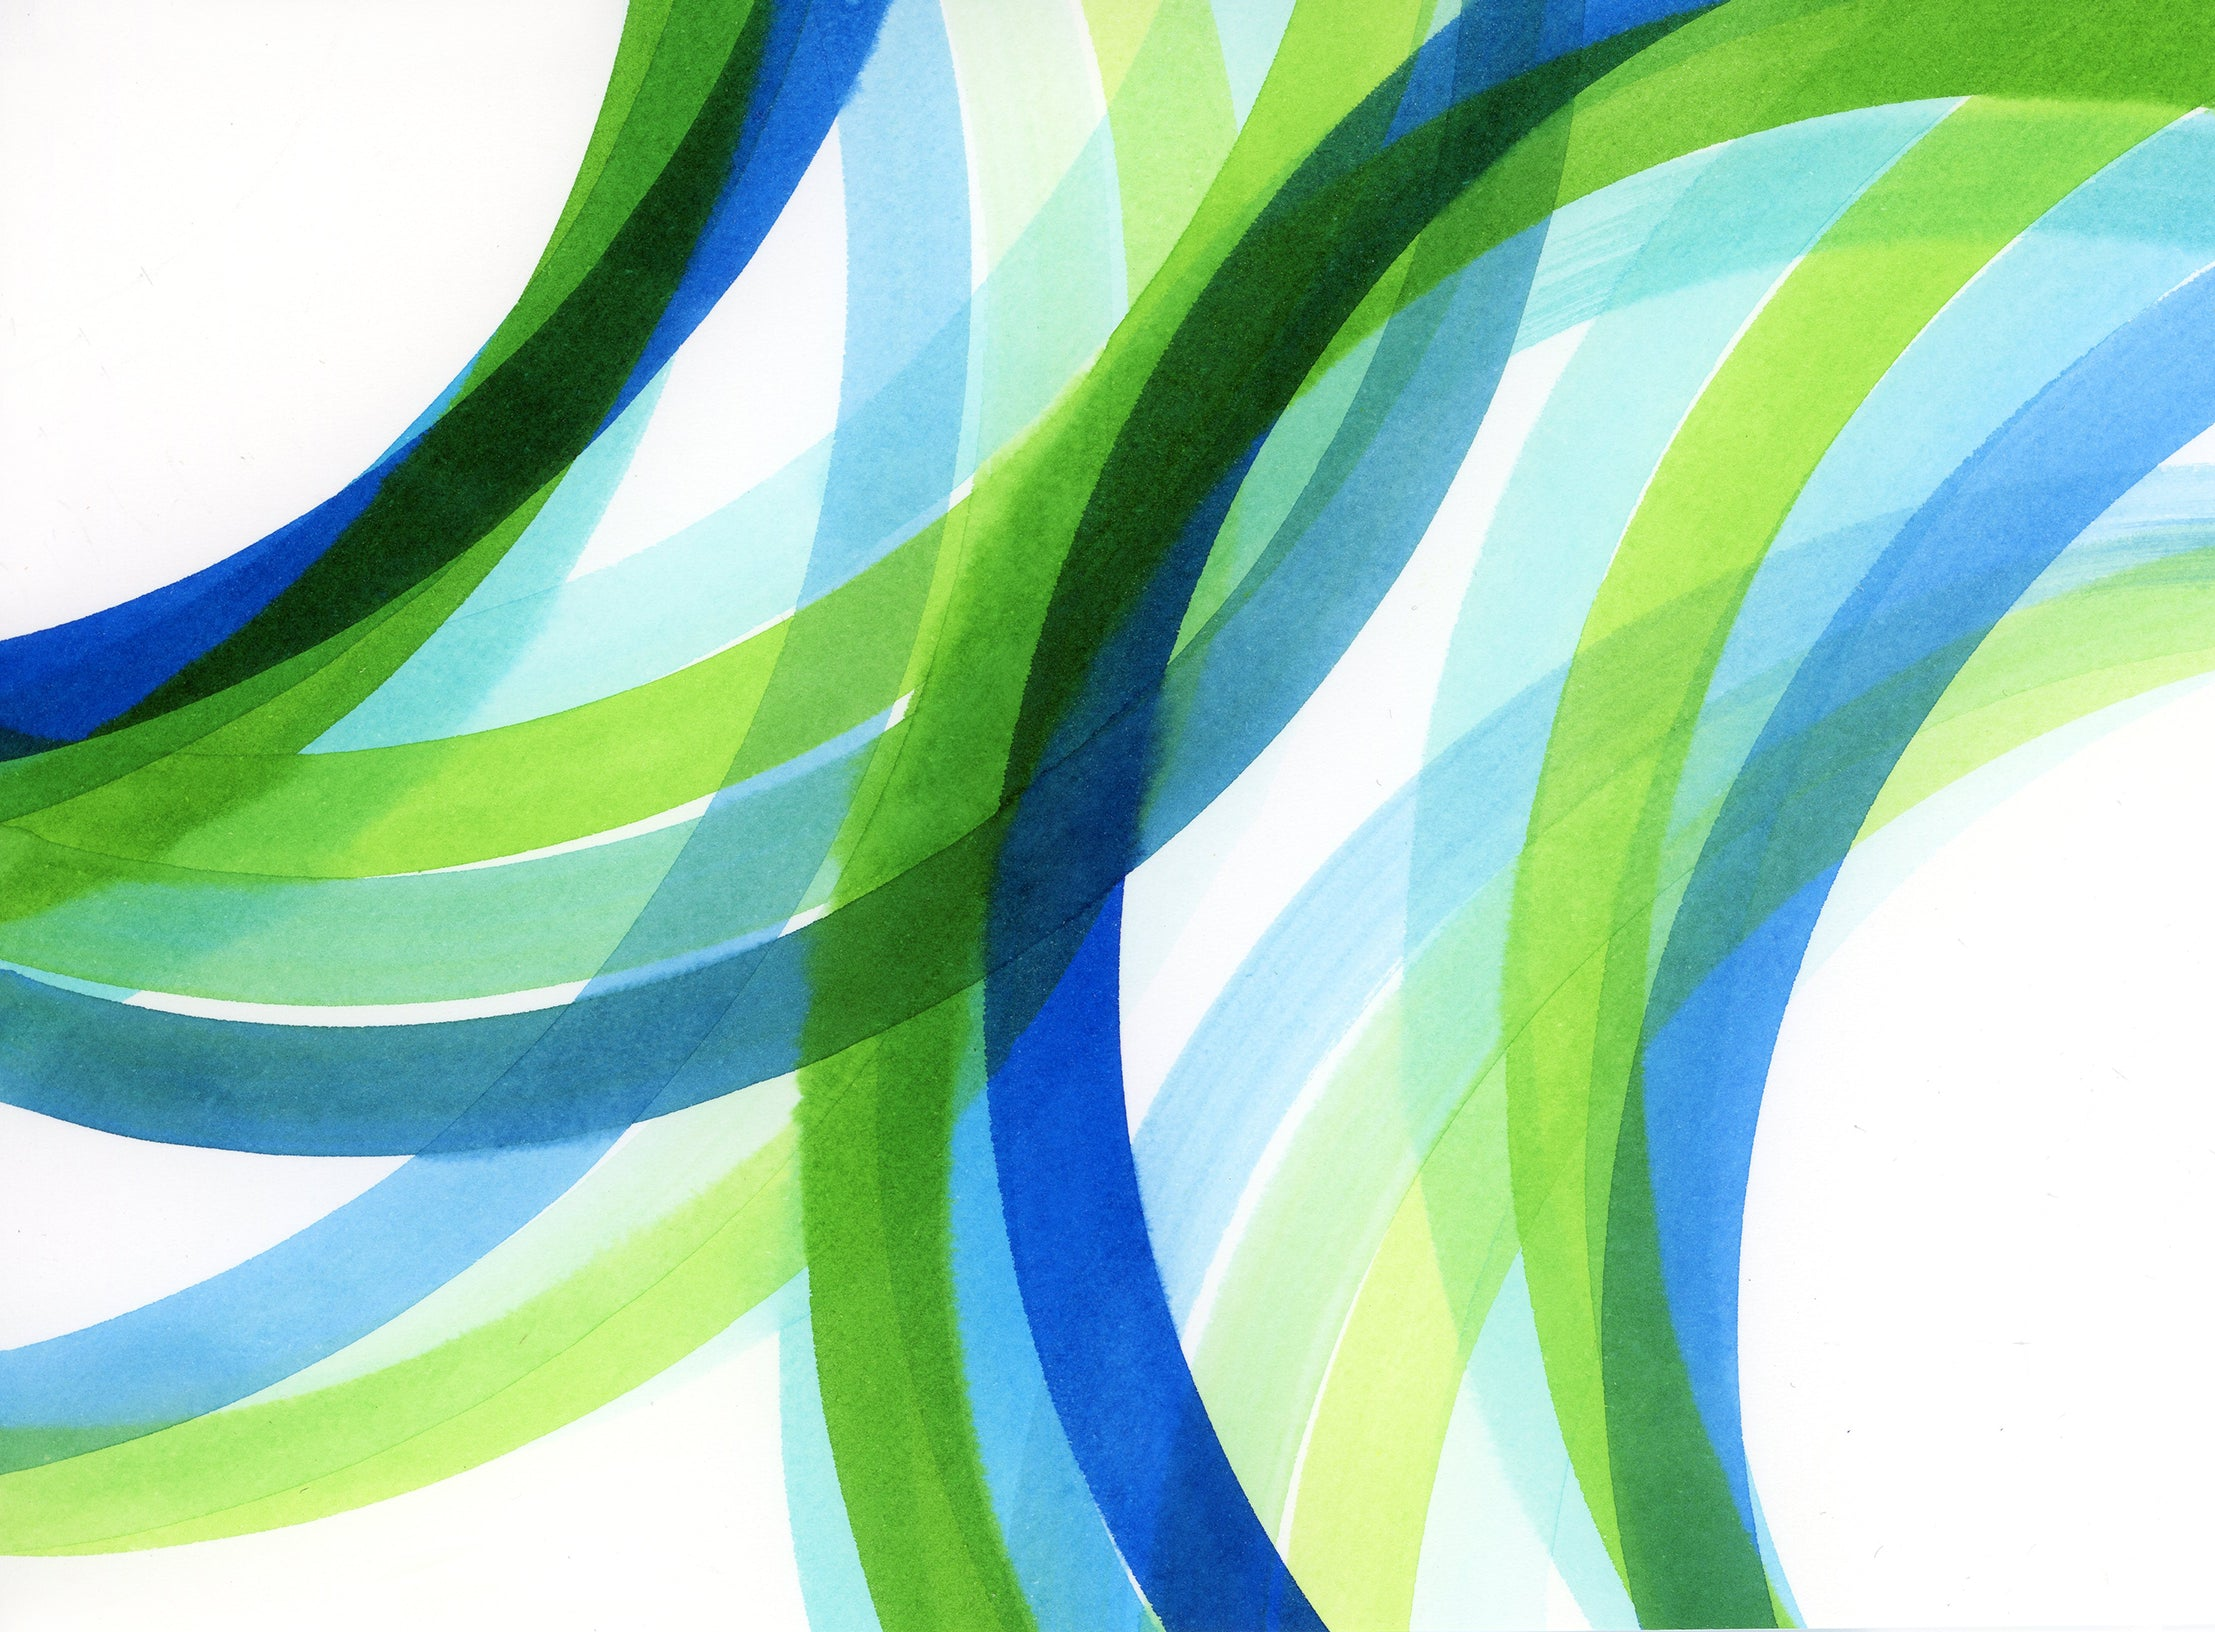 abstract painting detail of interlocking green, blue, turquoise circles